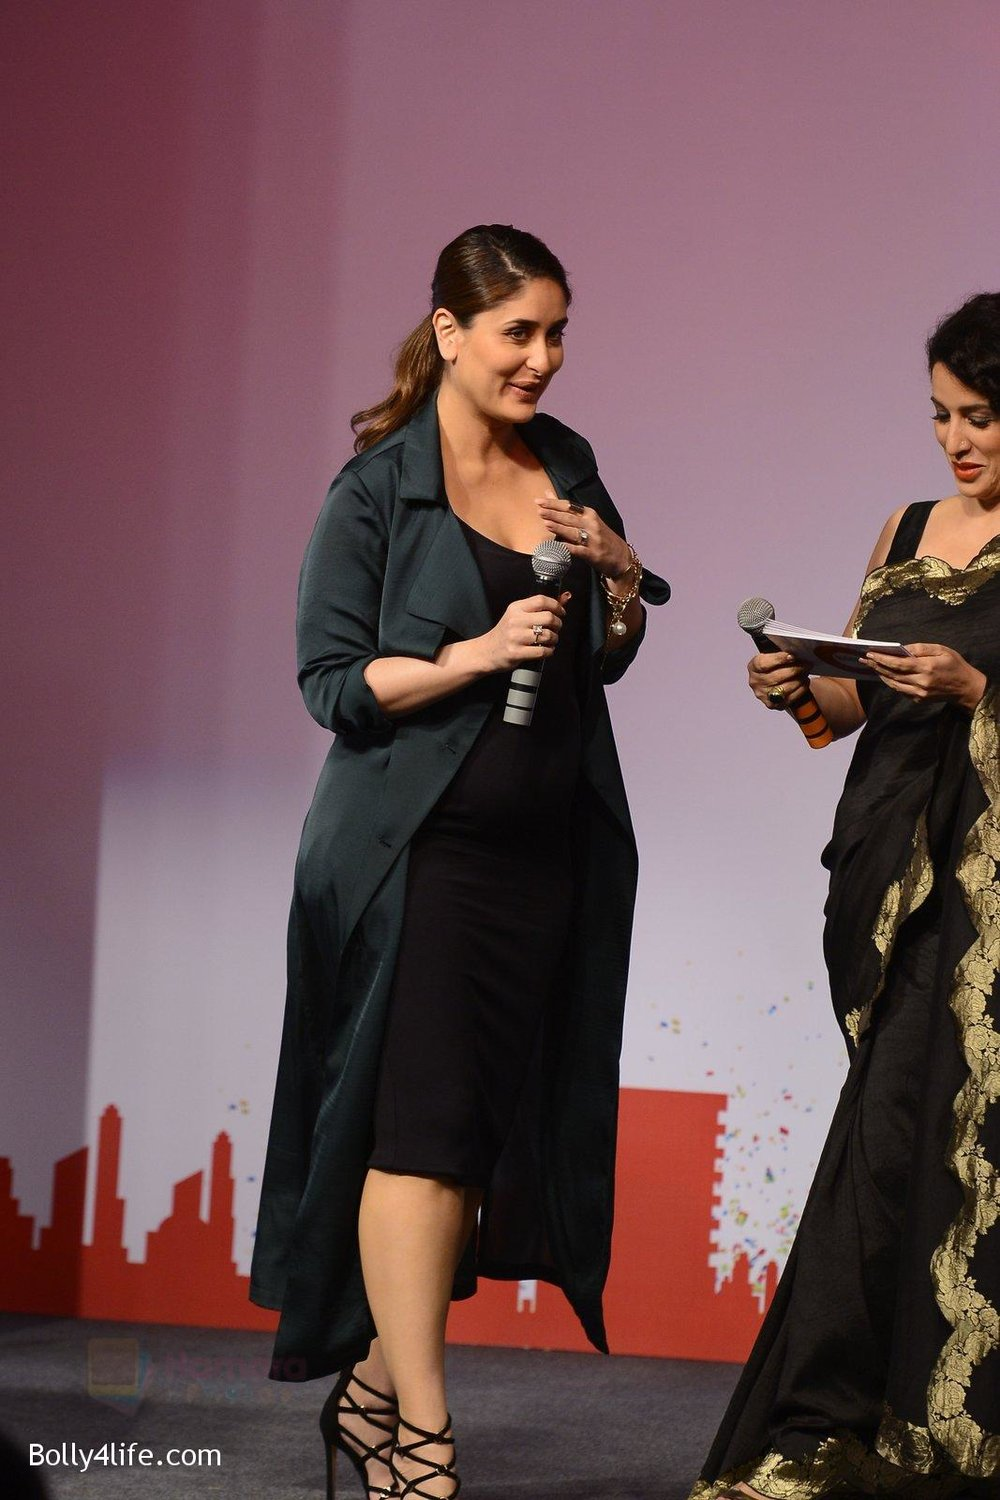 Kareena-Kapoor-Khan-at-the-launch-of-Global-Citizen-India-on-11th-Sept-2016-16f.jpg